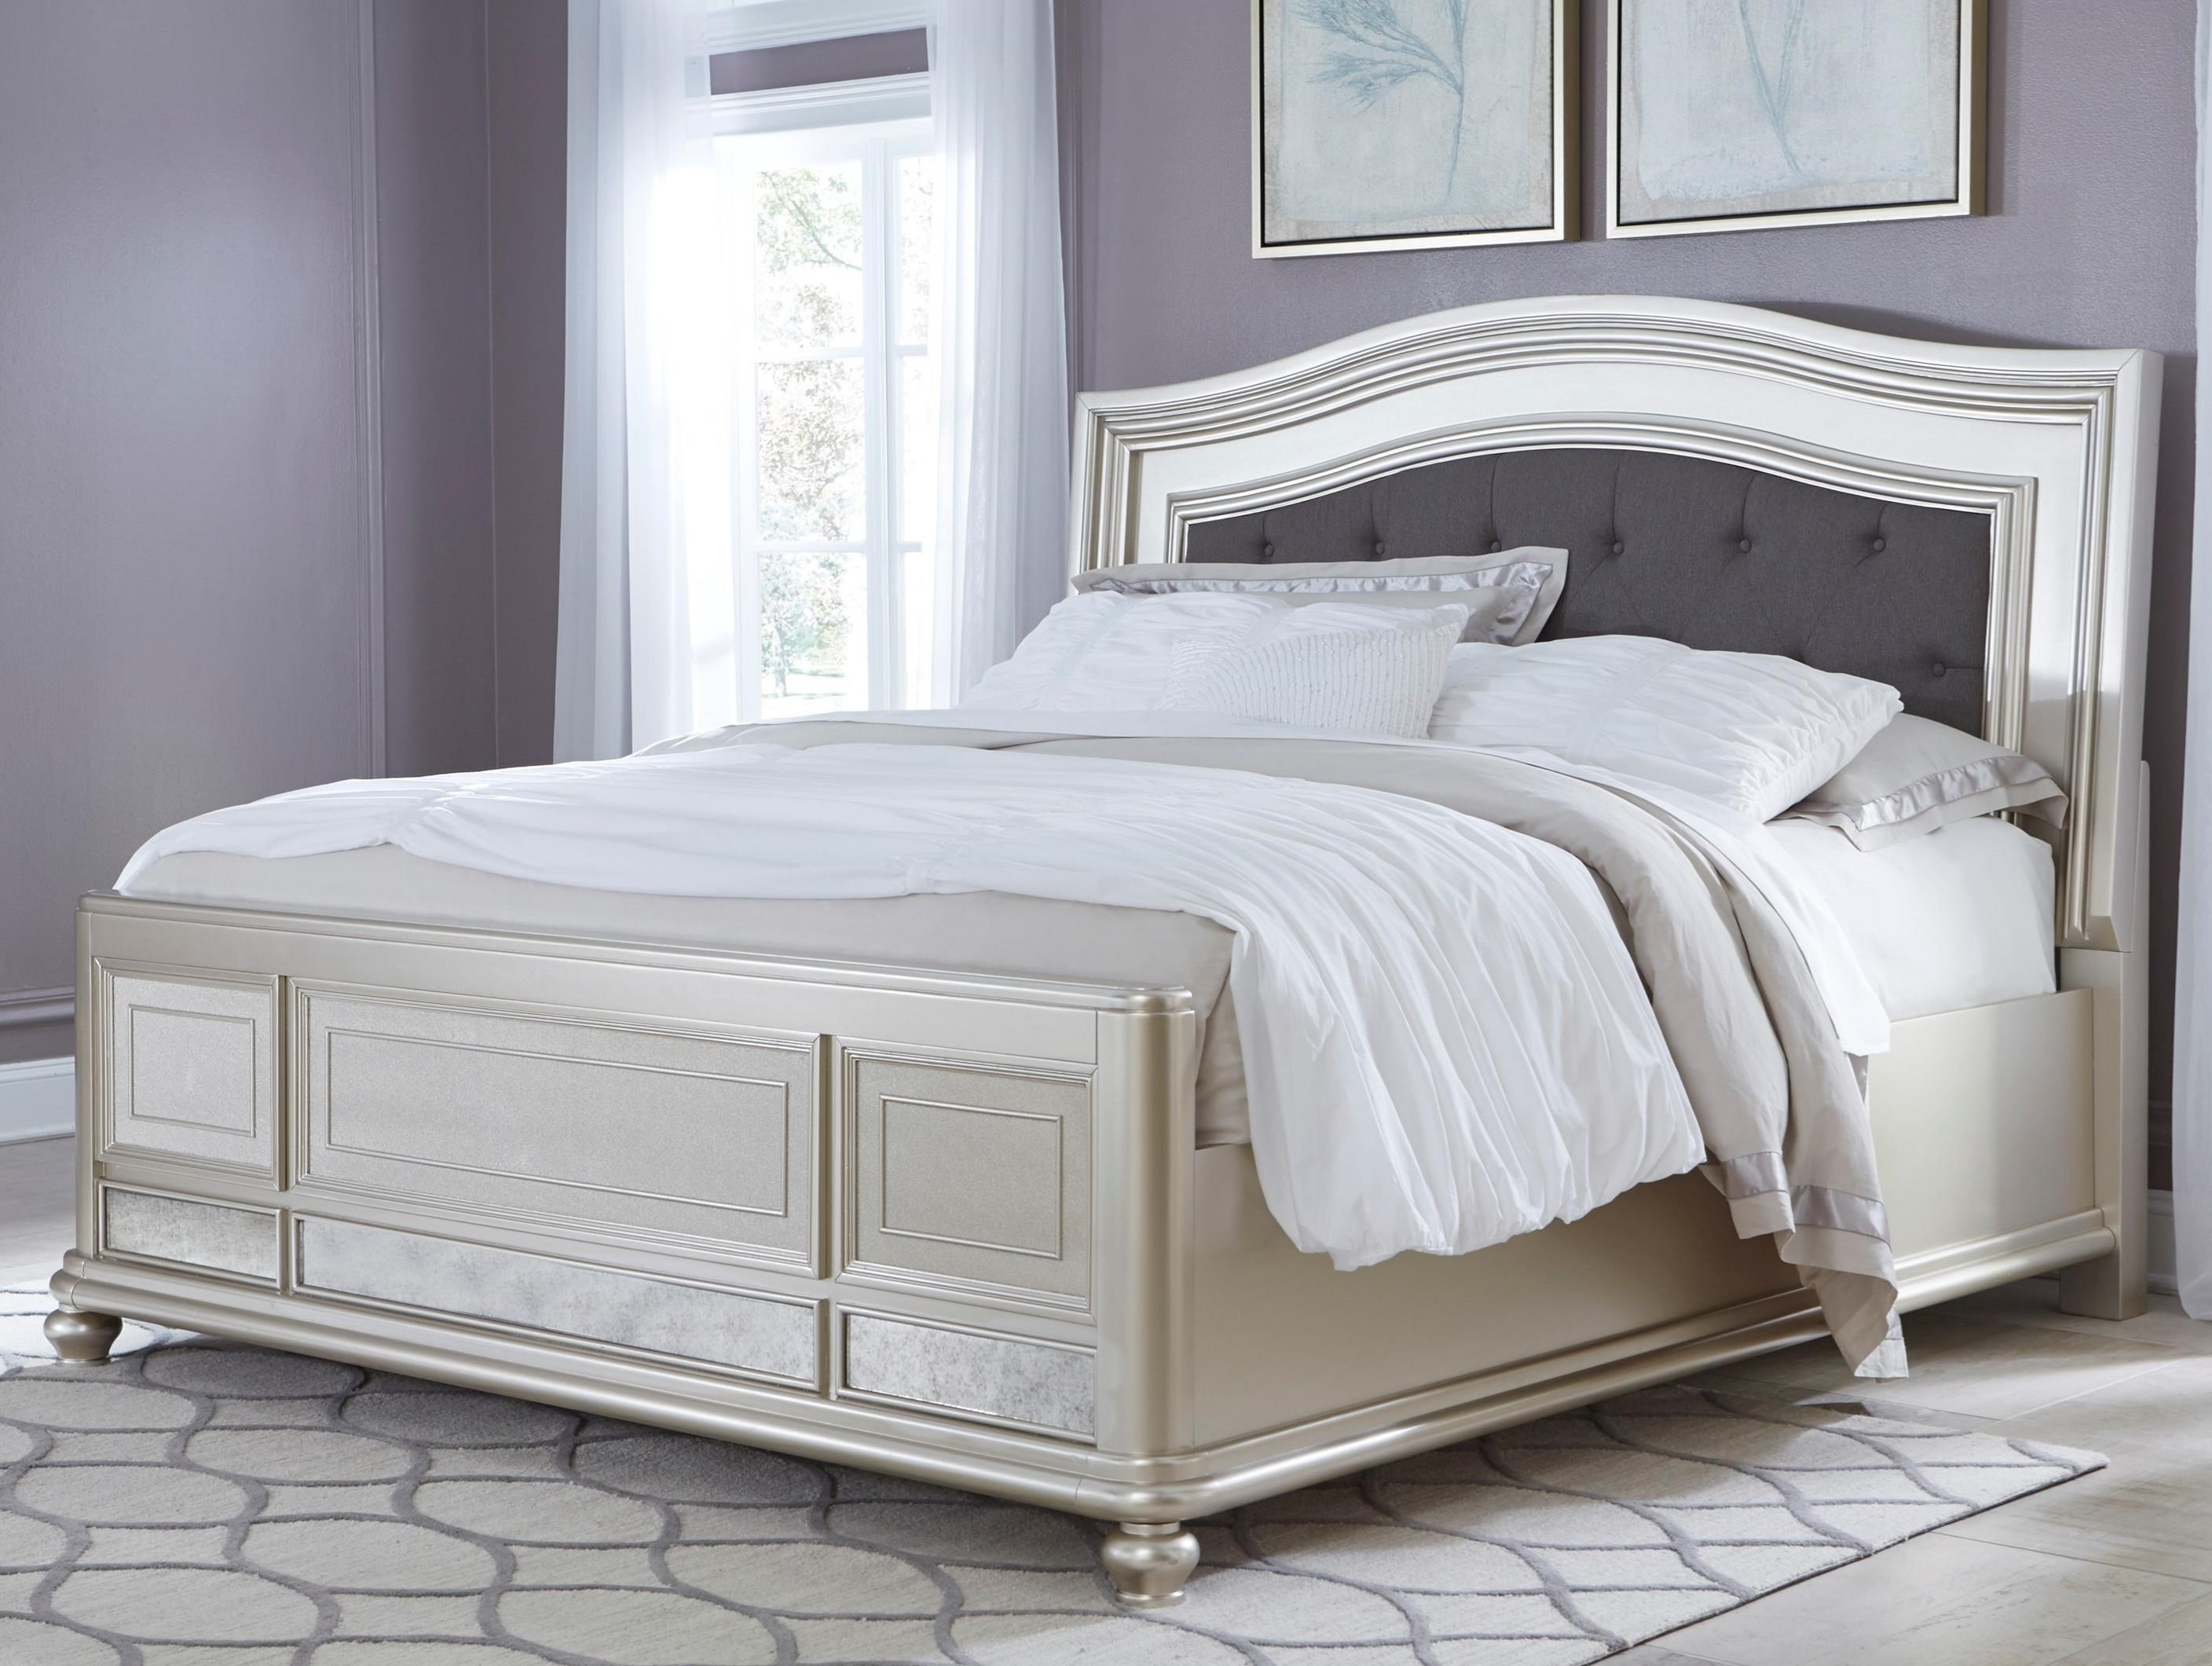 Bed Headboard Coralayne King Panel Bed With Arched Upholstered Headboard And Silver Finish Frame By Signature Design By Ashley At Sam Levitz Furniture